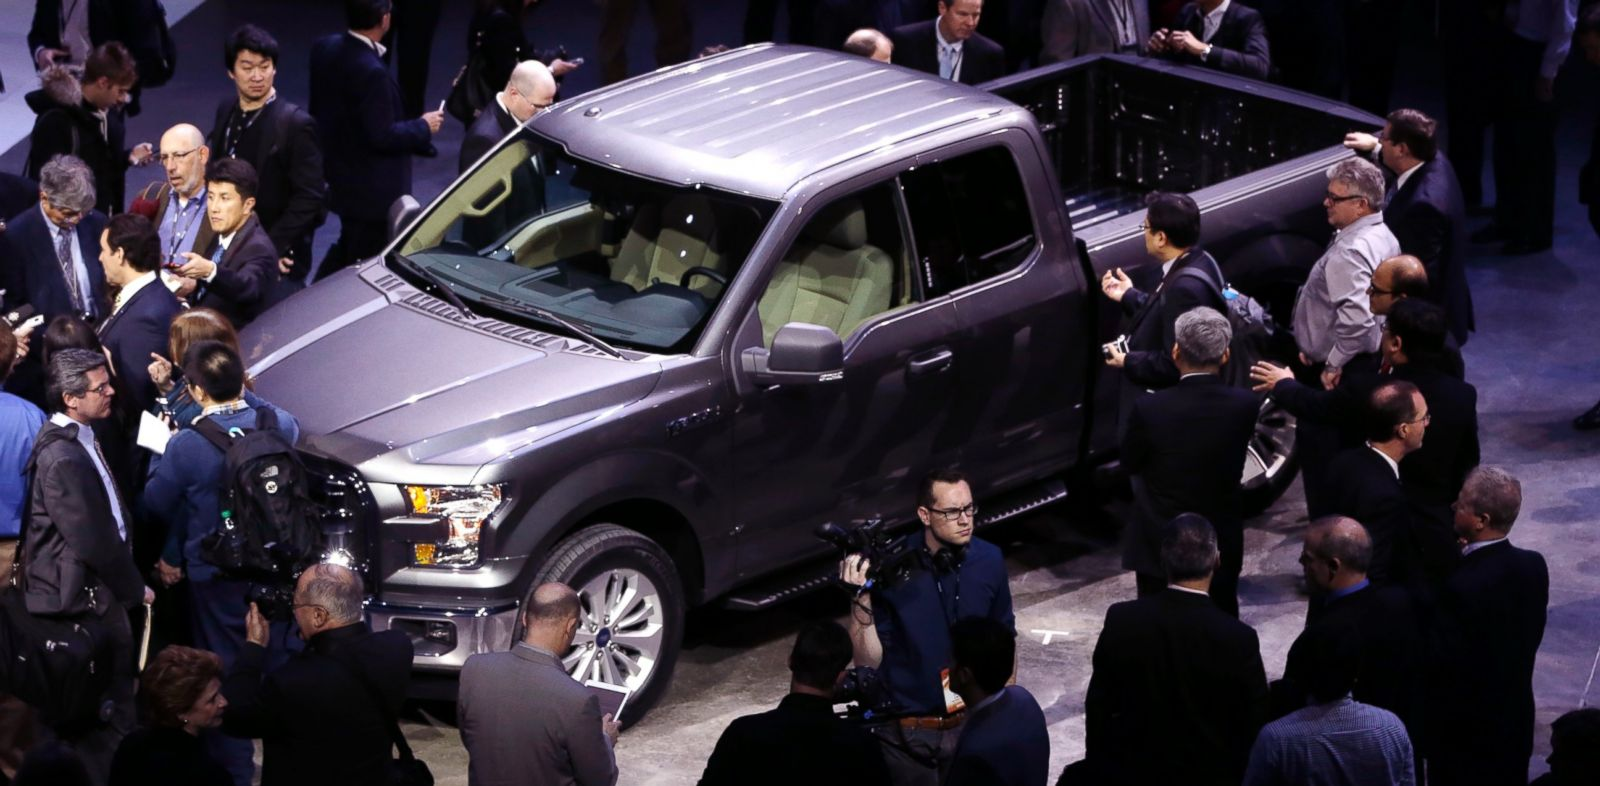 PHOTO: Journalists surround the new F-150 with a body built almost entirely out of aluminum at the North American International Auto Show in Detroit, Jan. 13, 2014.